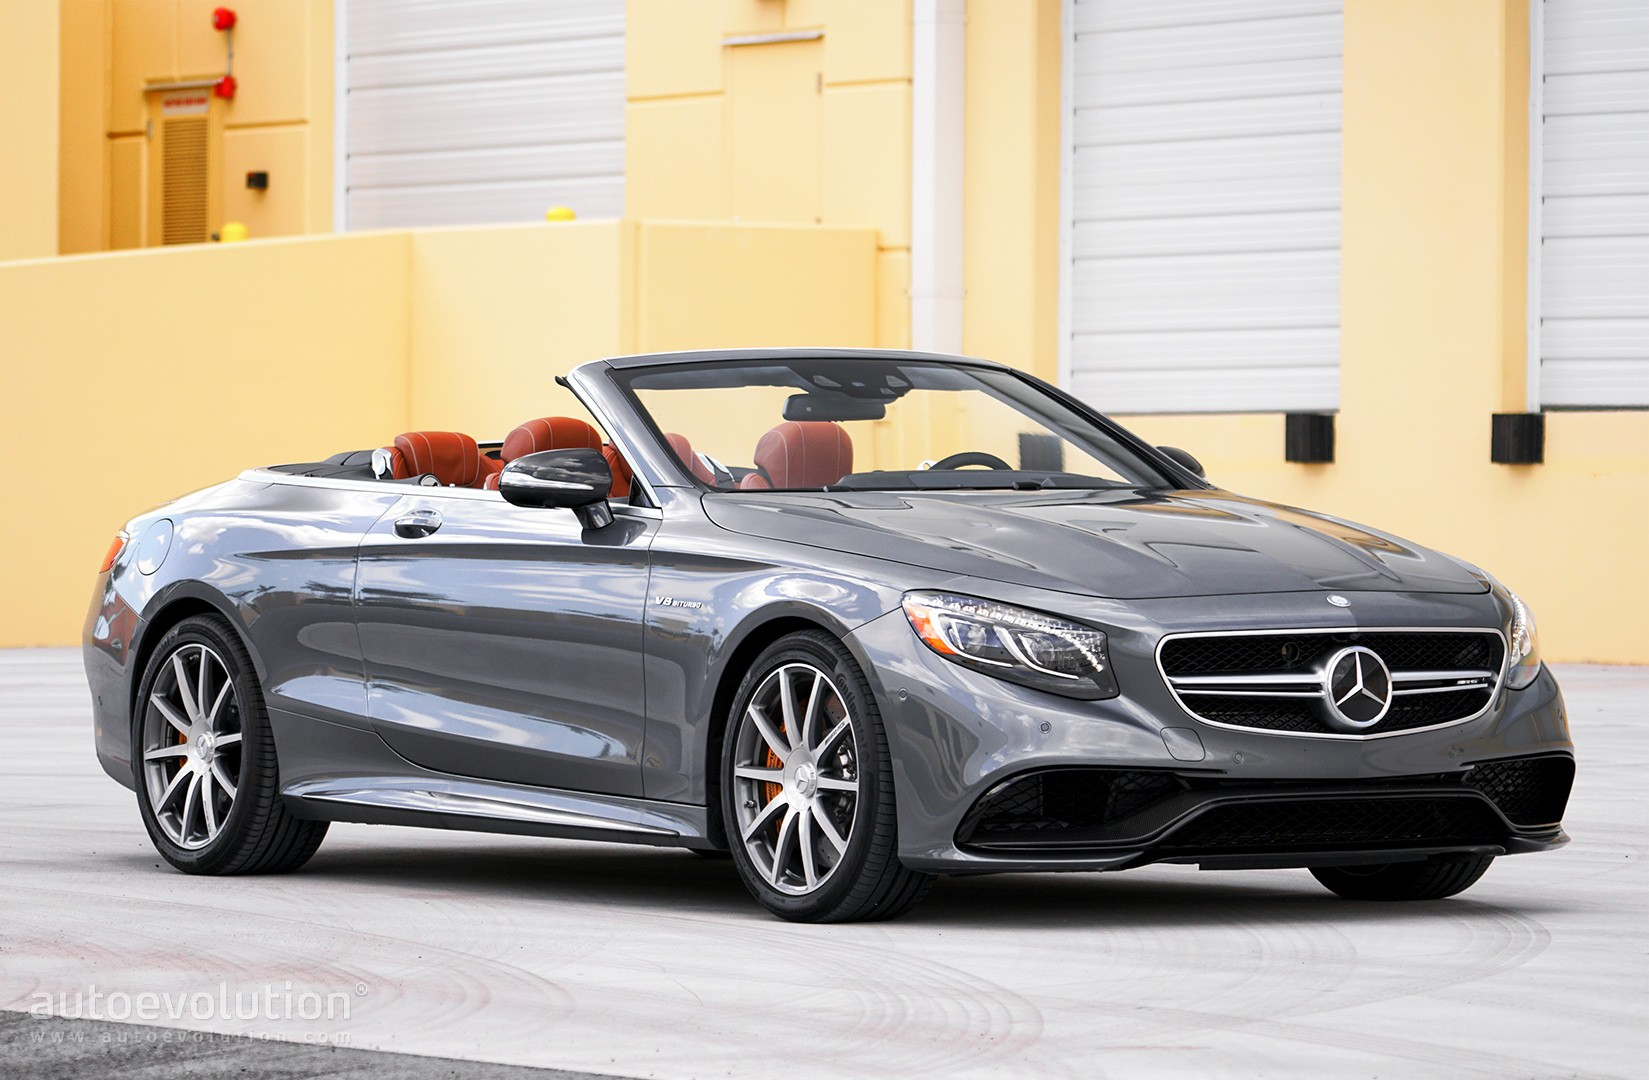 Driven: 2017 Mercedes-AMG S63 Cabriolet - autoevolution